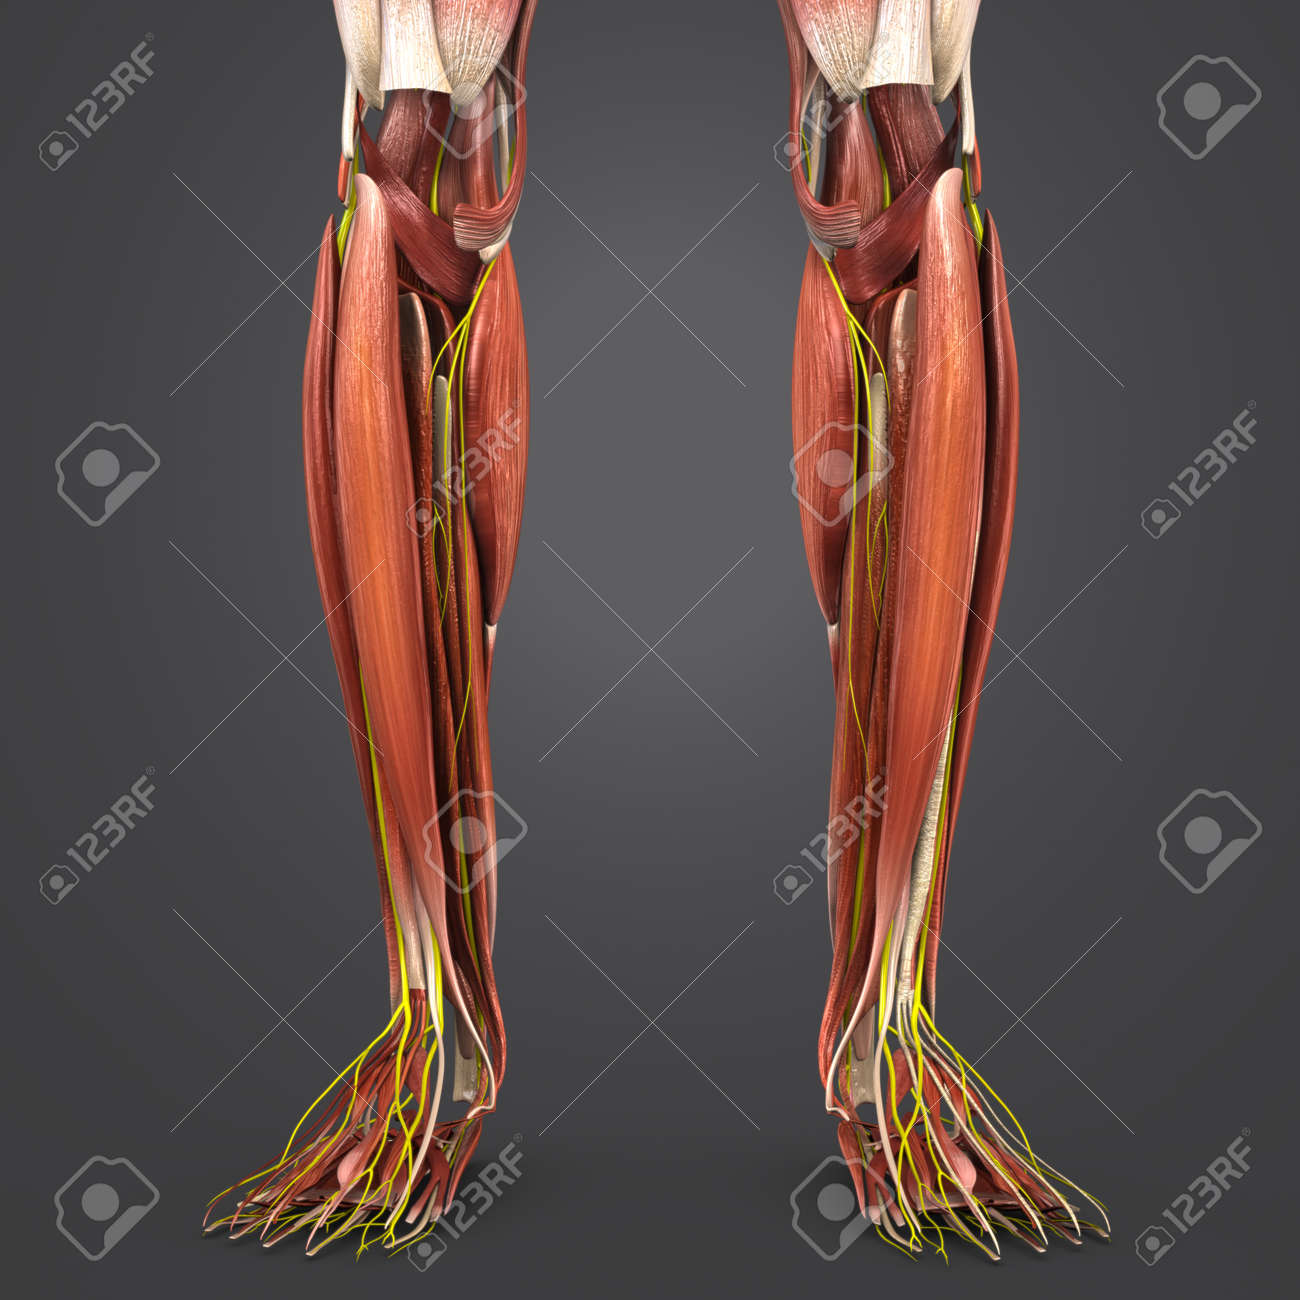 Leg Muscles Anatomy With Nerves Stock Photo Picture And Royalty